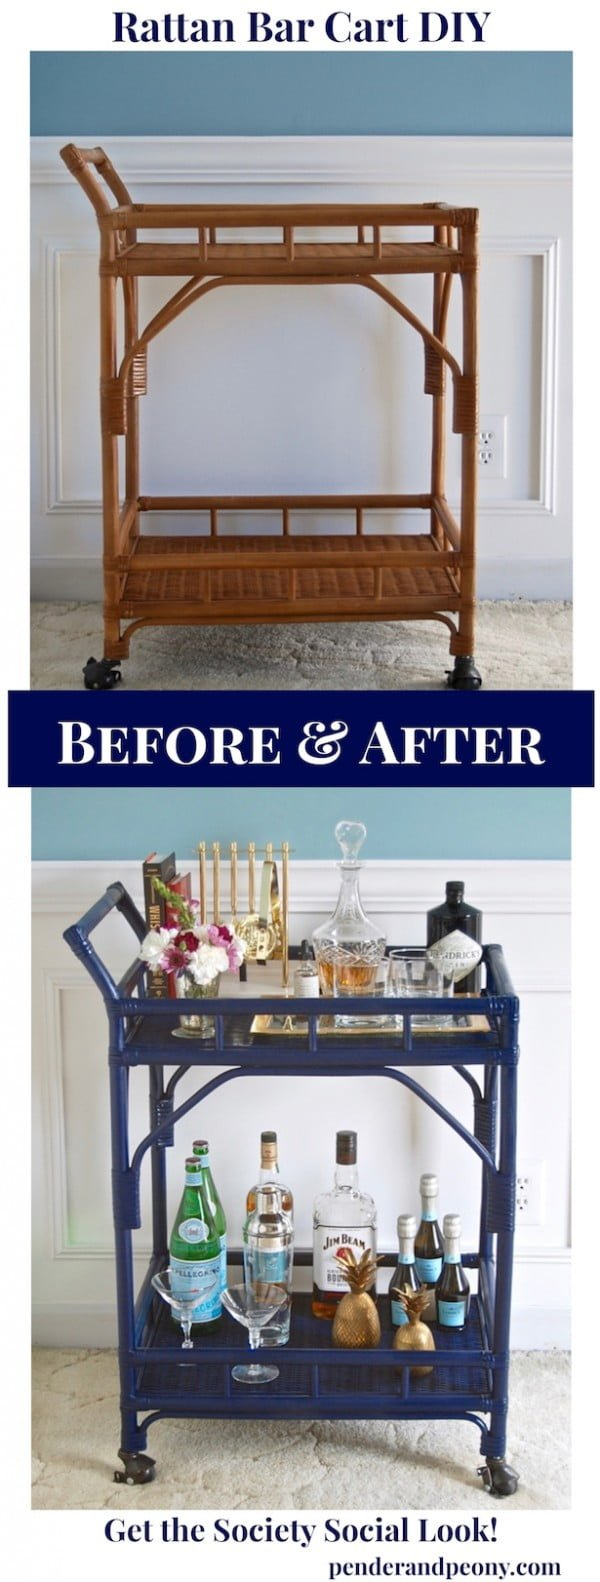 How to build a  rattan bar cart